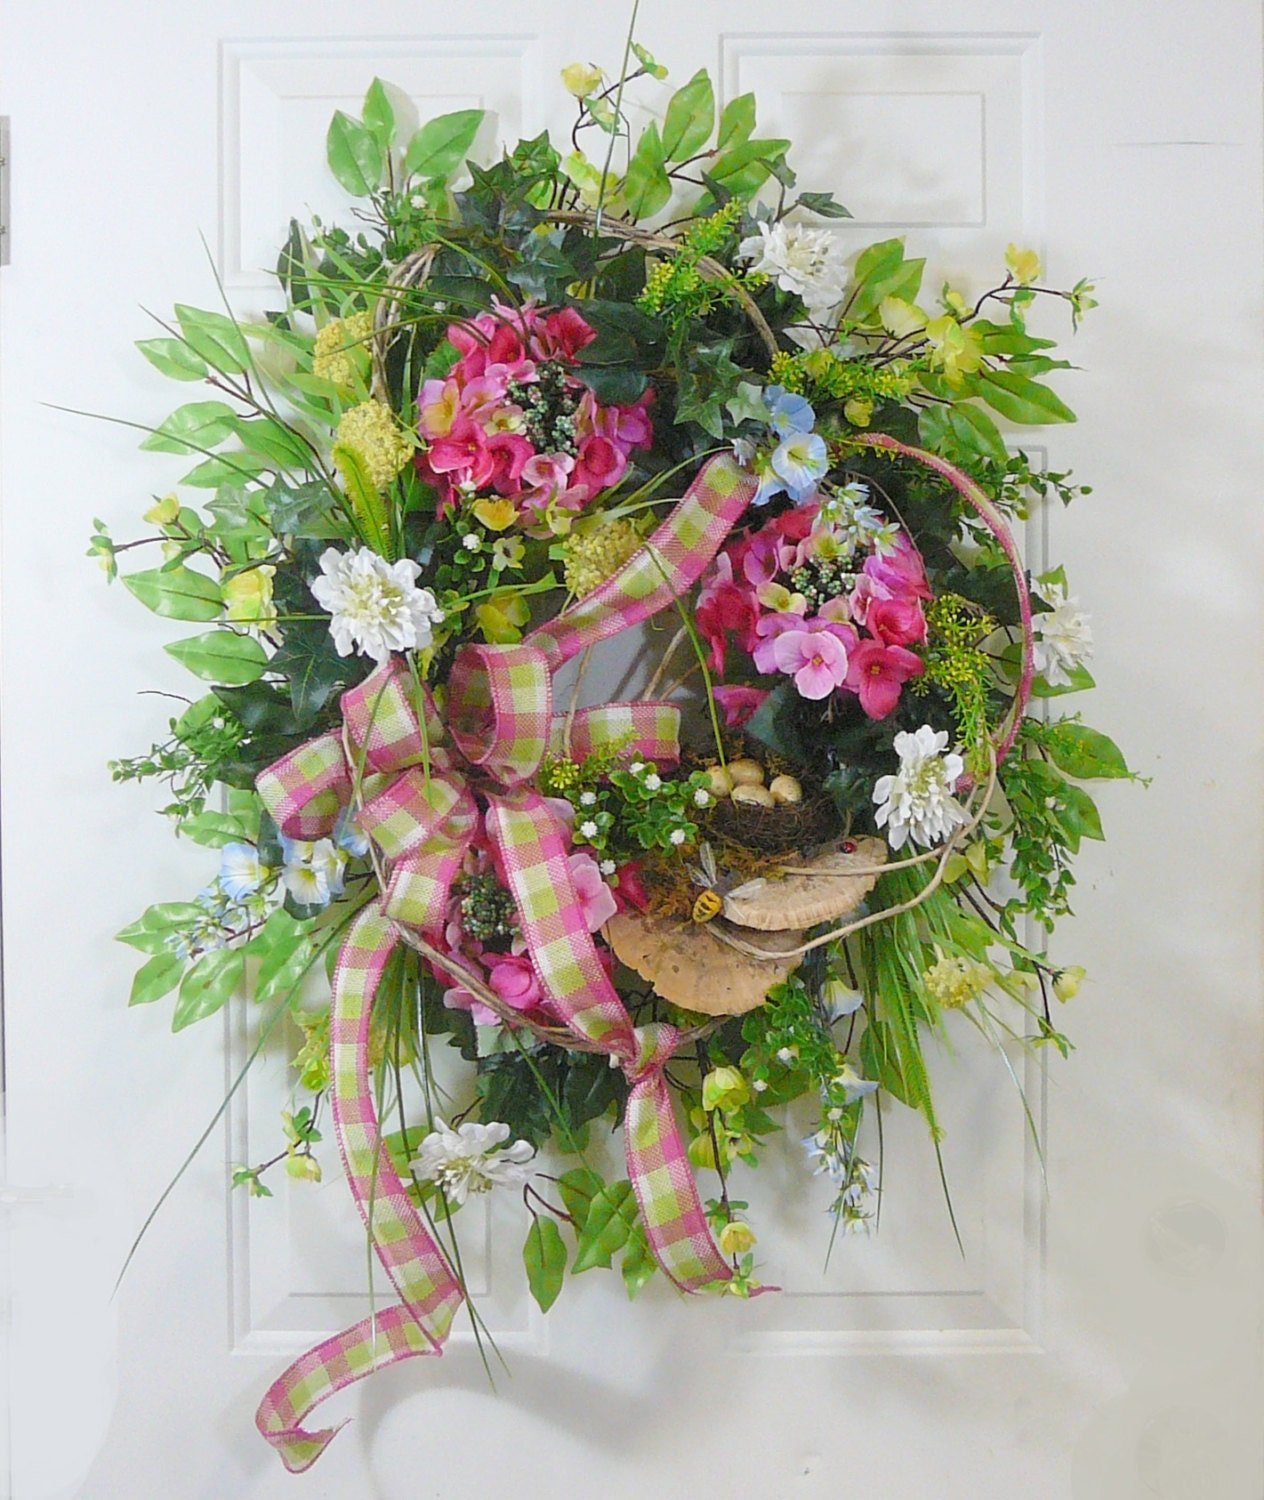 X Spring & Summer Outdoor Wreath With Bird nest and